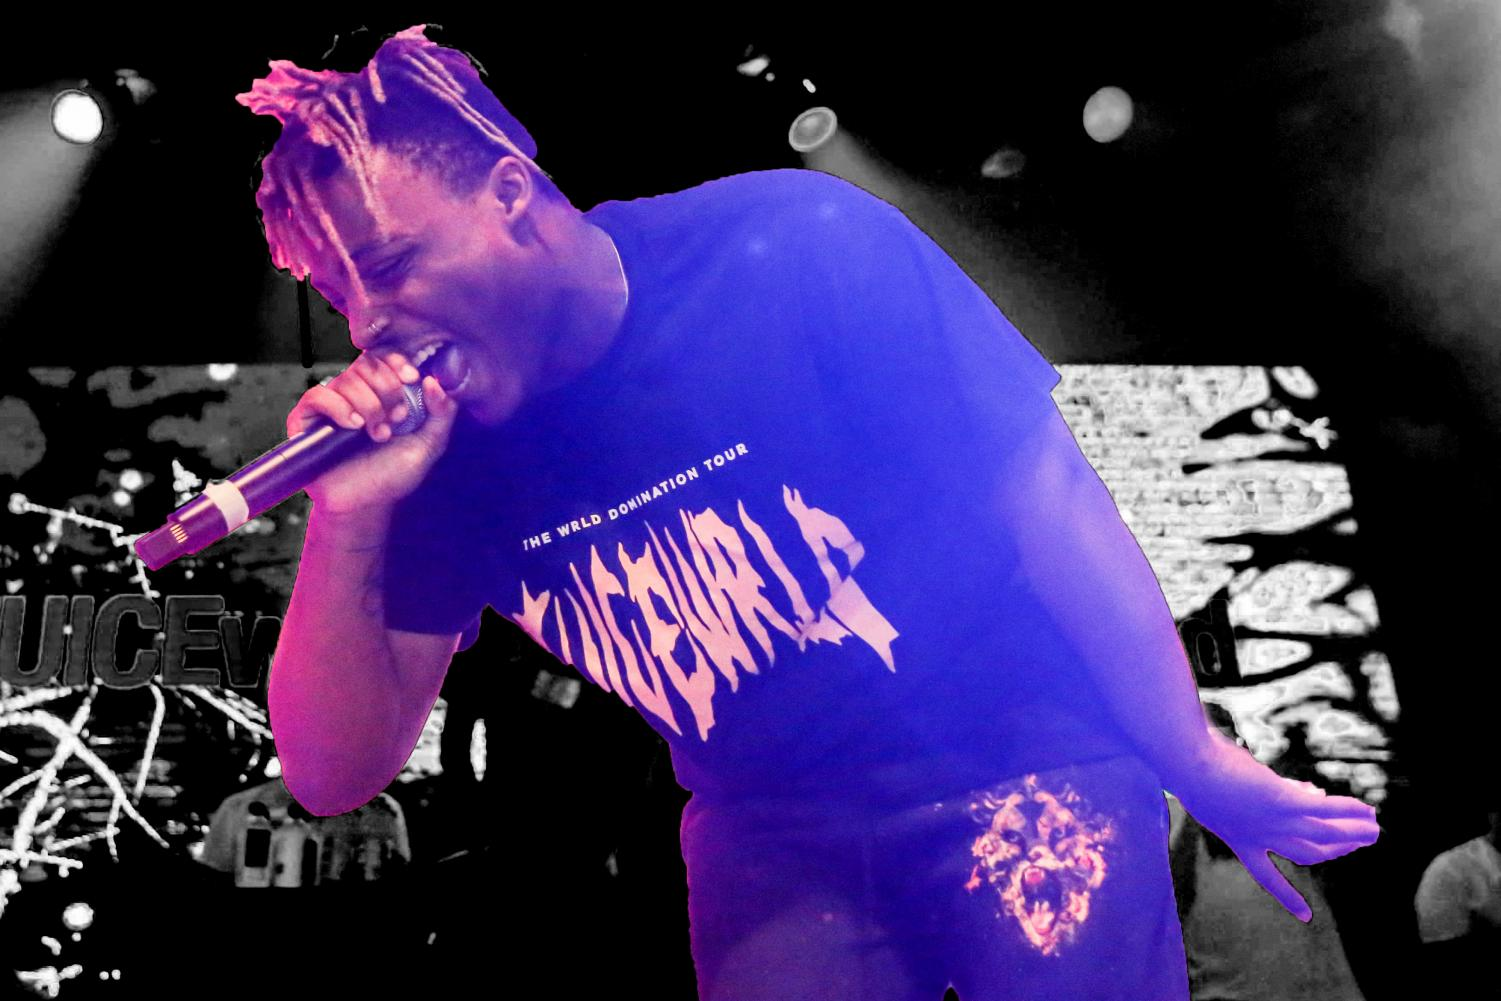 Juice WRLD's new album is top on the lists, and Noah Hedges is here to tell you why.